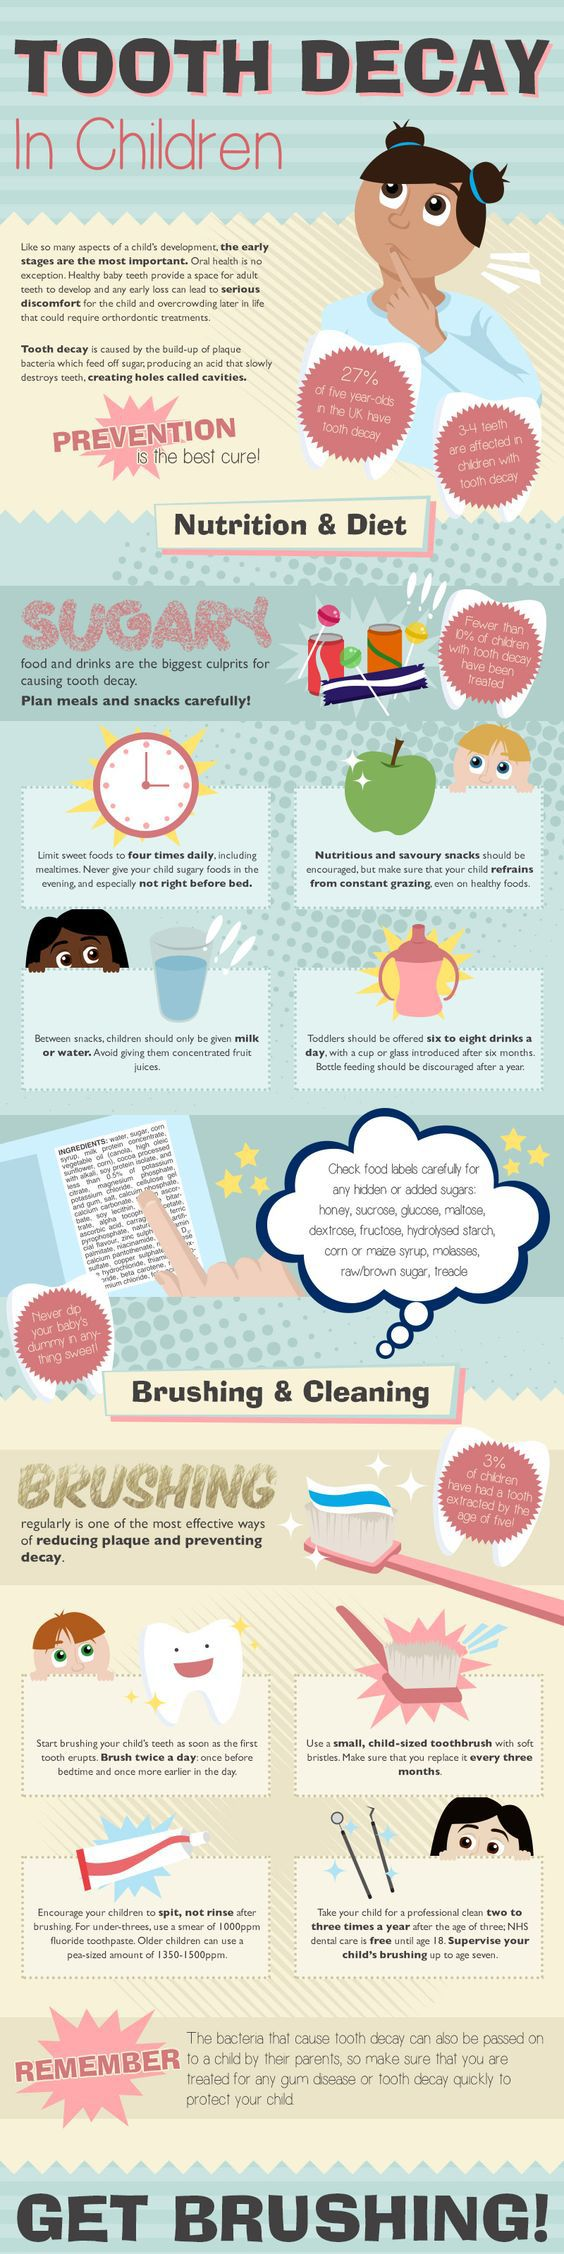 #Tooth Decay In #Children #Infographic